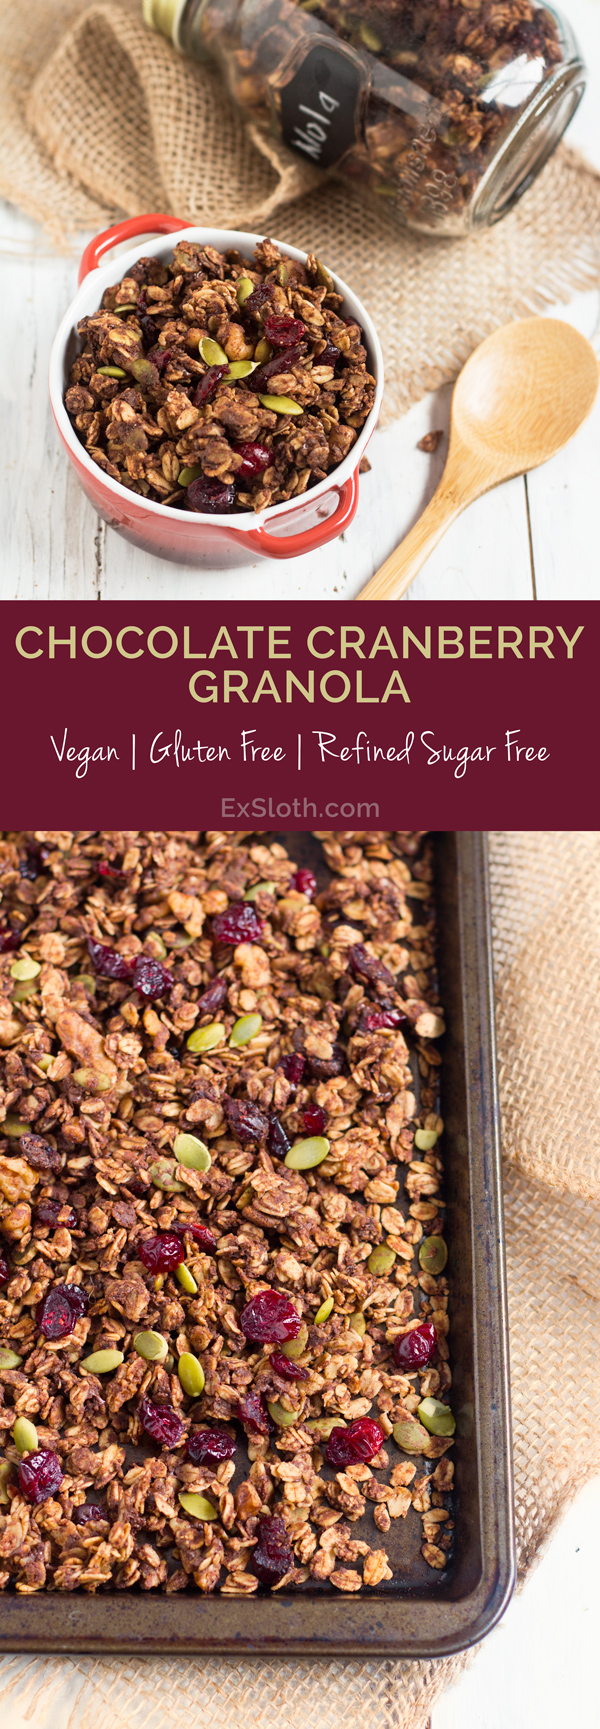 Healthy, Vegan Chocolate Cranberry Granola Recipe via @ExSloth | ExSloth.com